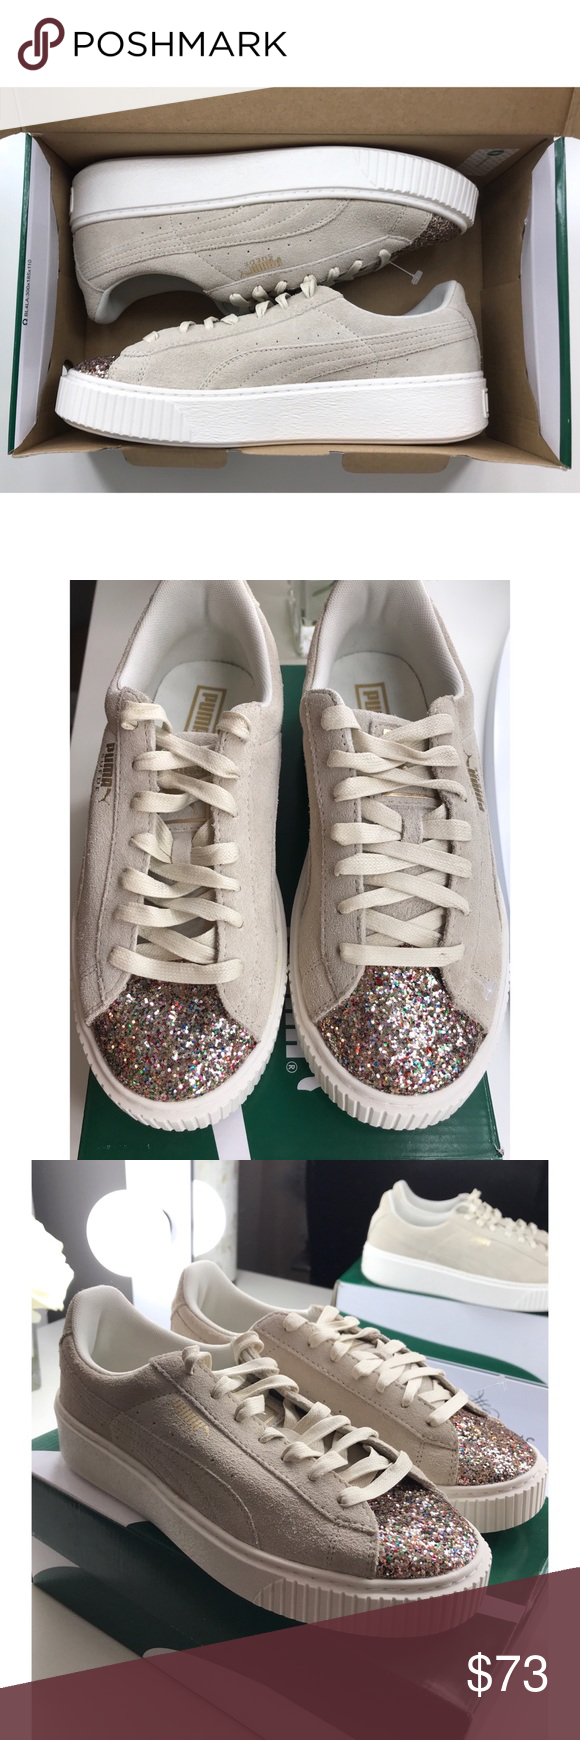 30baa6de0f60 NEW Puma Suede Platform Crushed Gem Sneakers New in box! Color  Marshmallow  Puma ‼